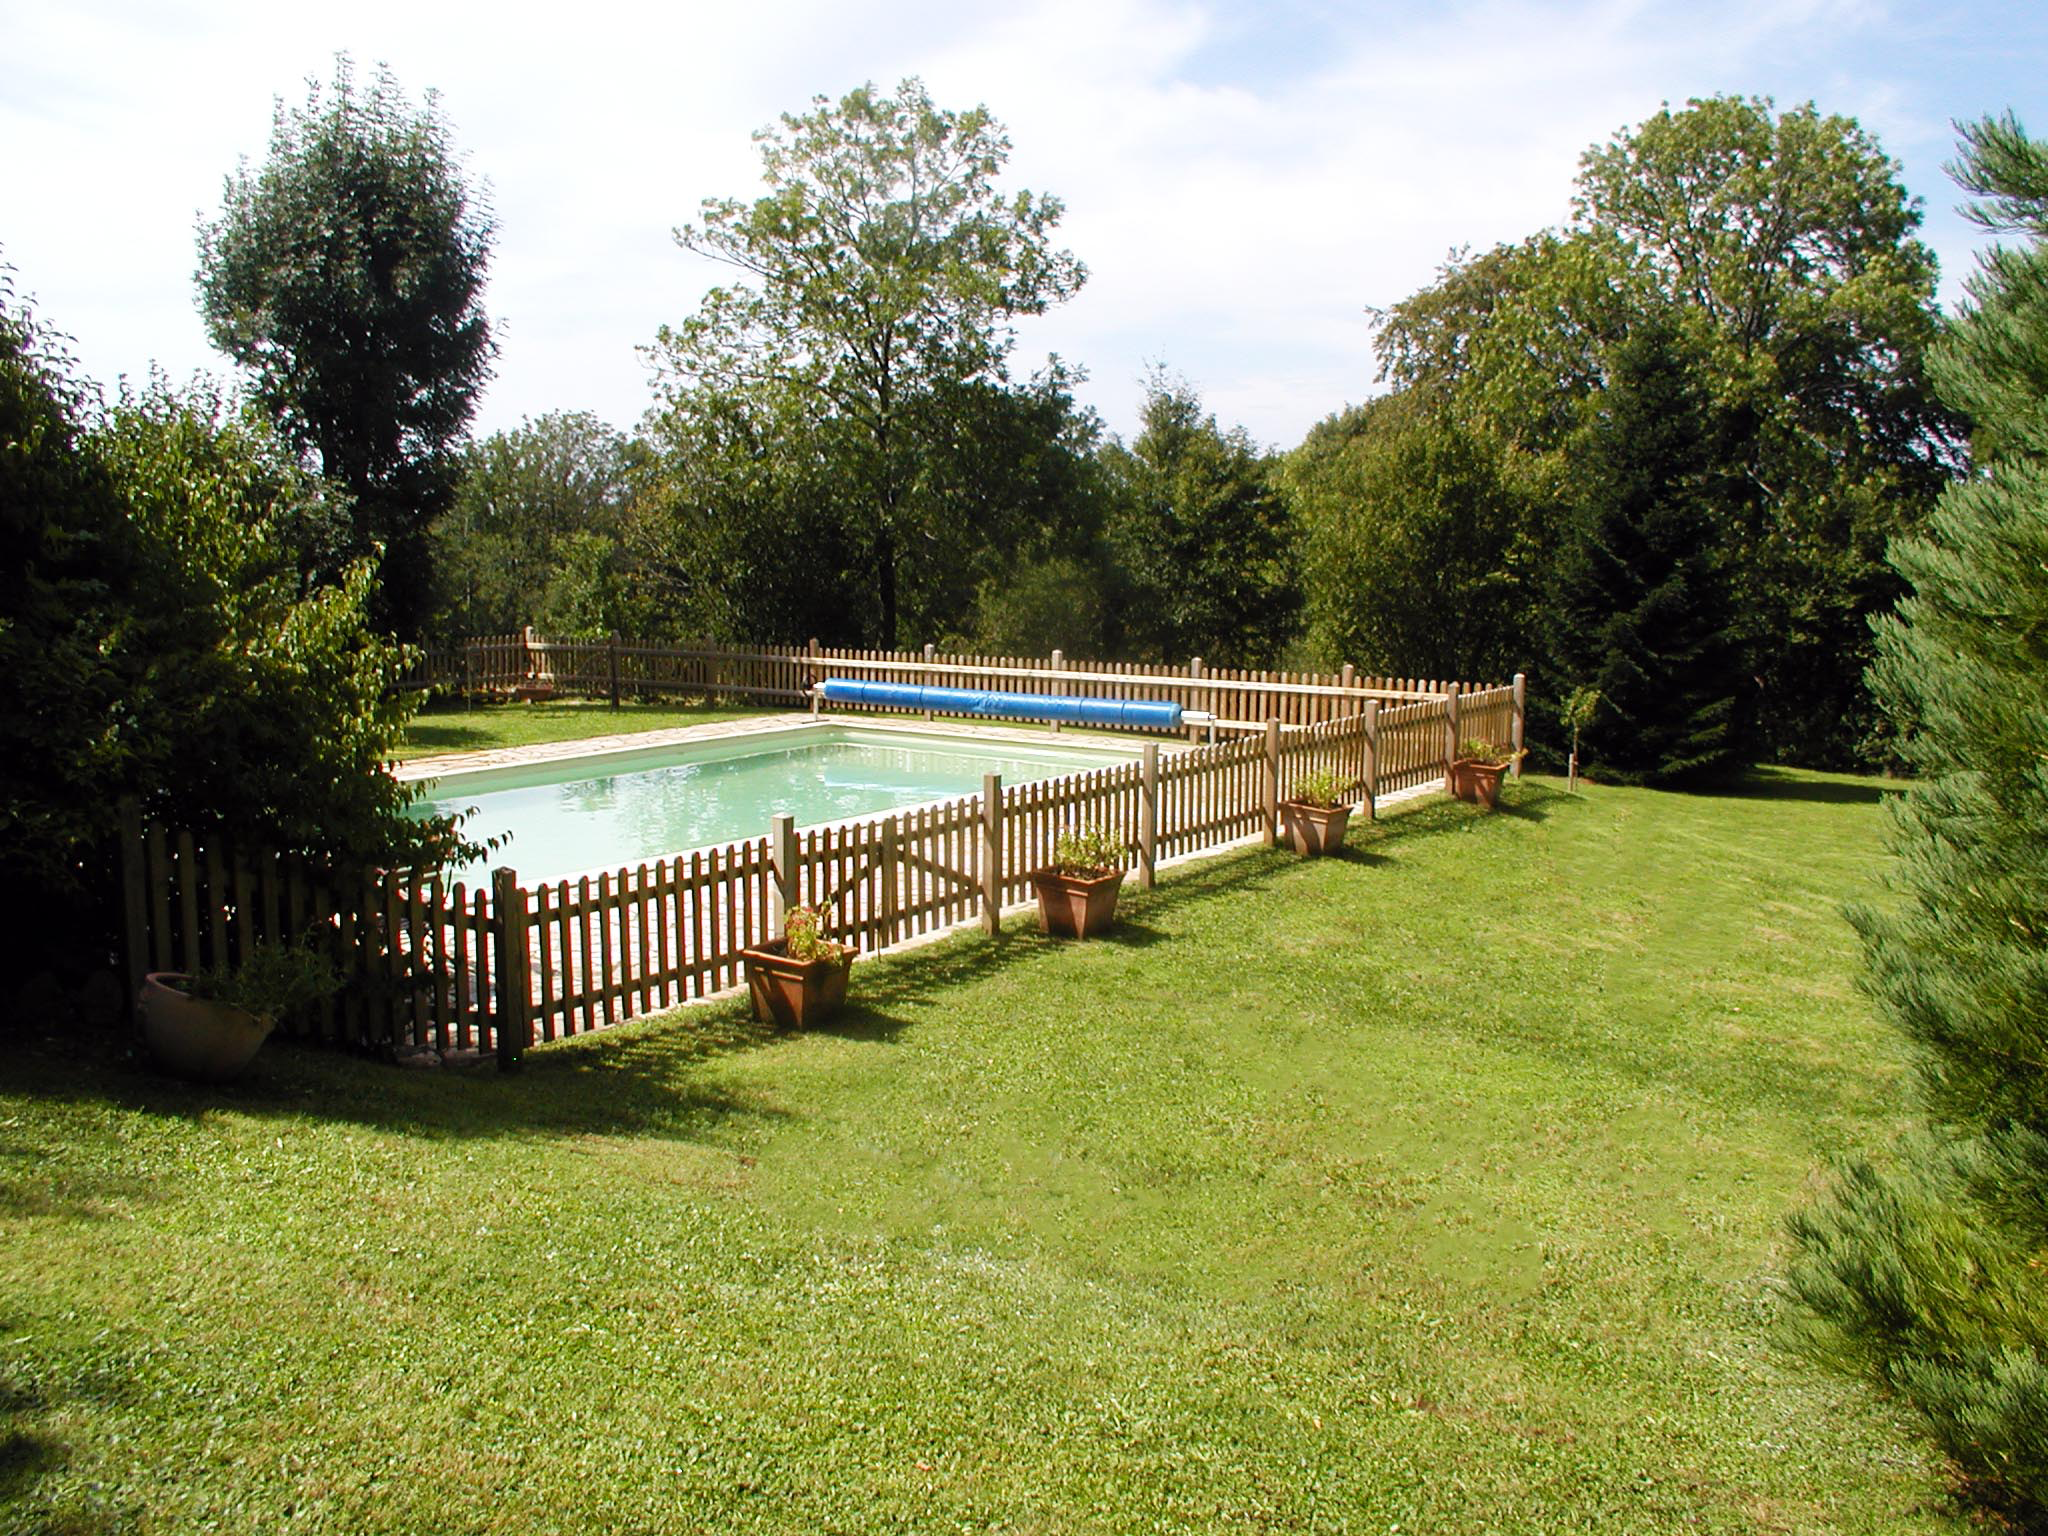 Cloture De Securite En Bois Autour D Une Piscine Bellevue Paysages Saint Bonnet De Salers Paysagiste Canta Barriere Piscine Cloture Bois Cloture Piscine